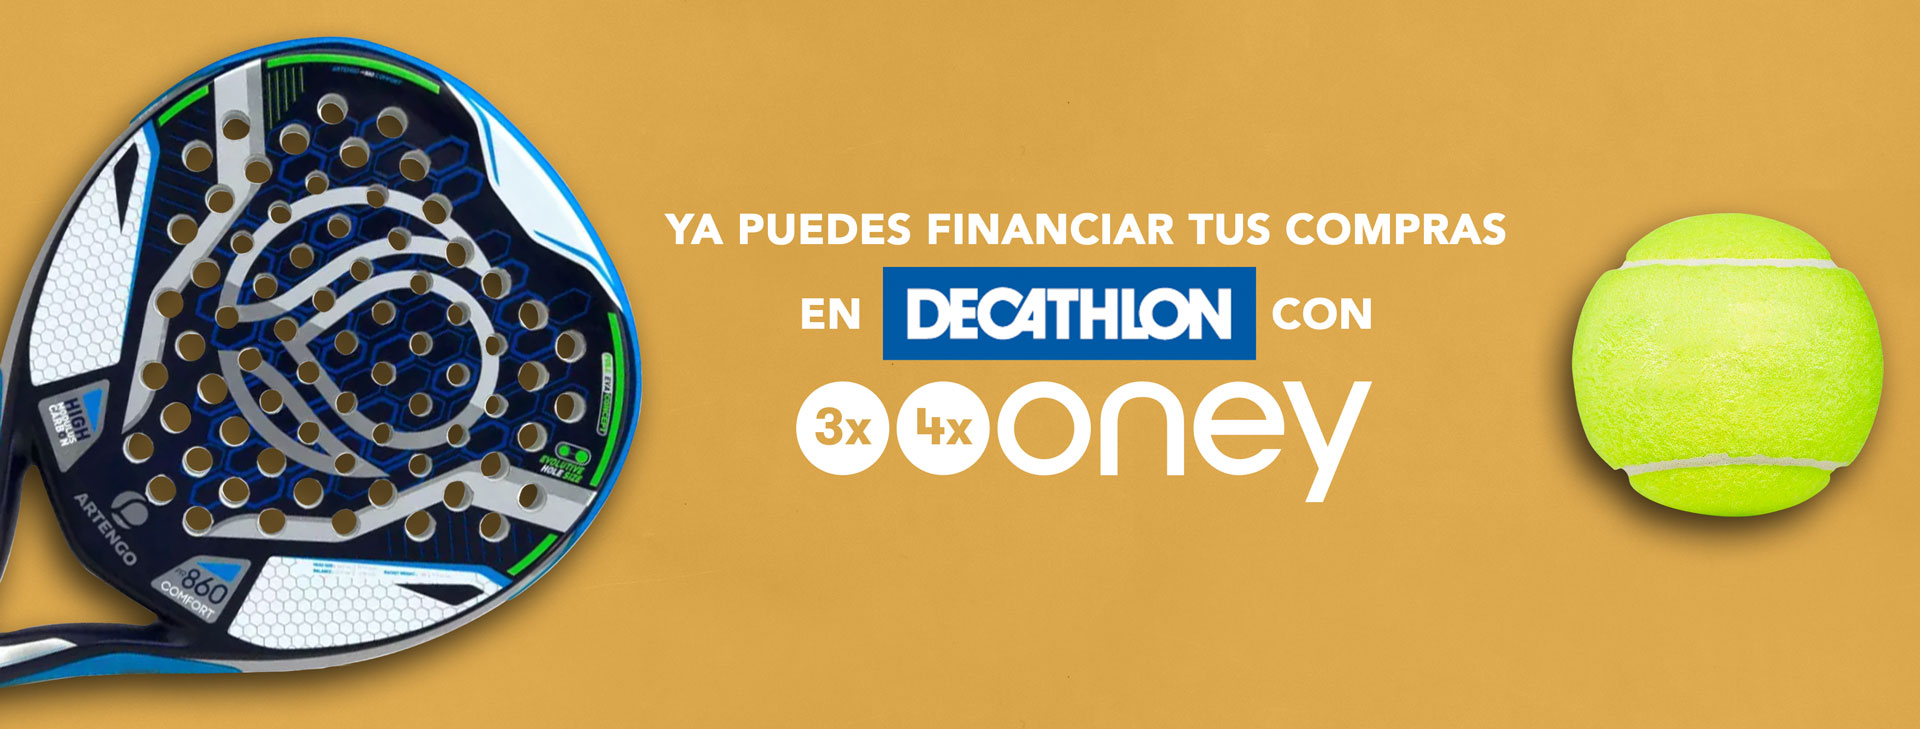 Financiacion instantánea decathlon